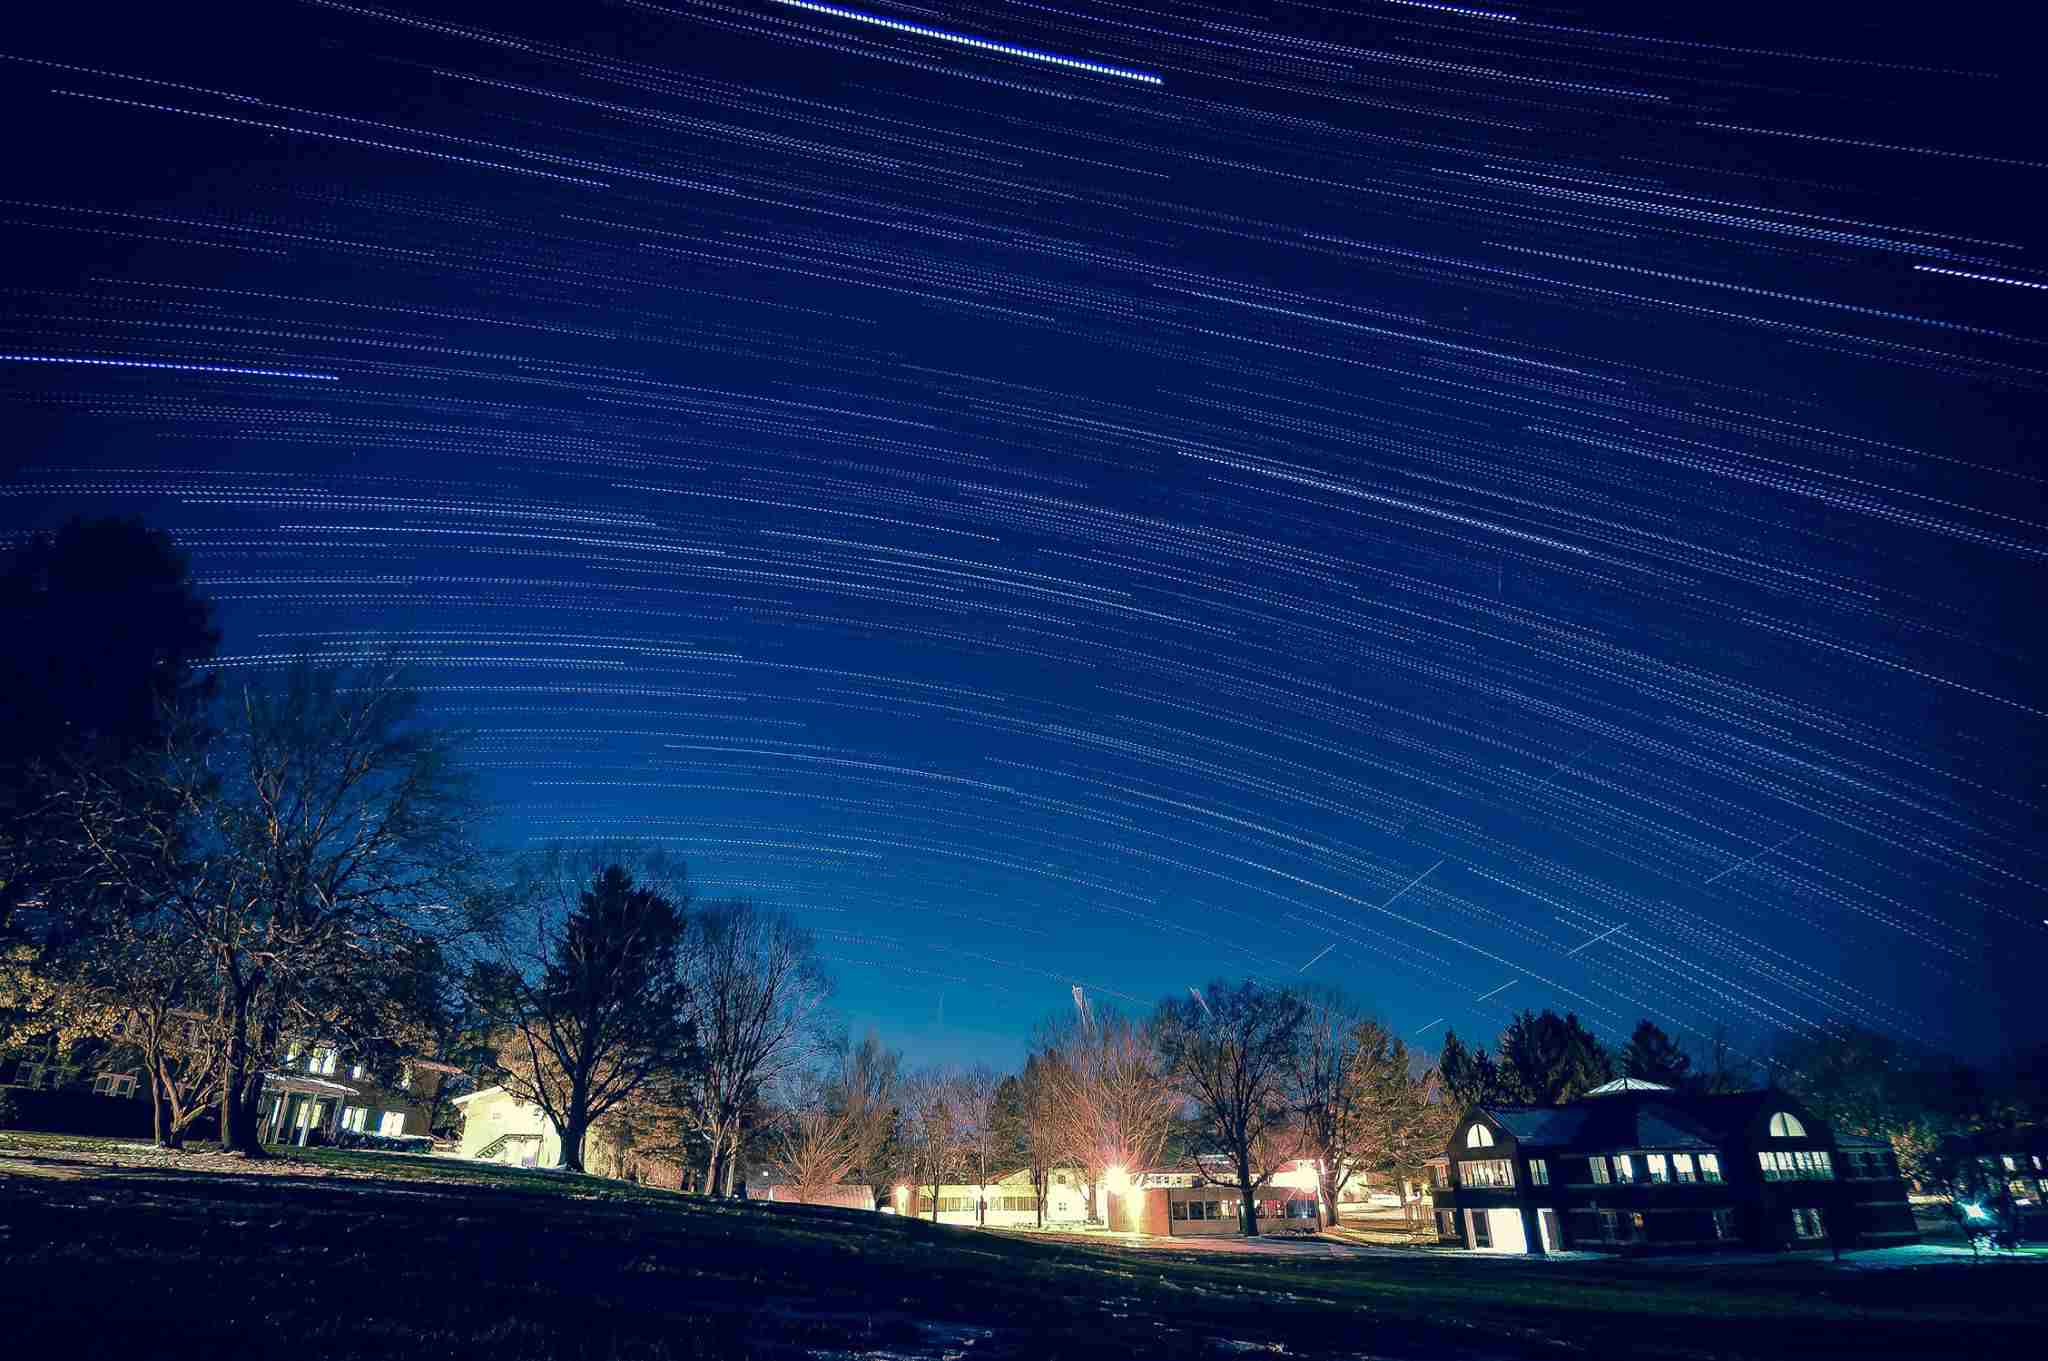 Nighttime Time Lapse photo of stars moving over Oakwood Friends School